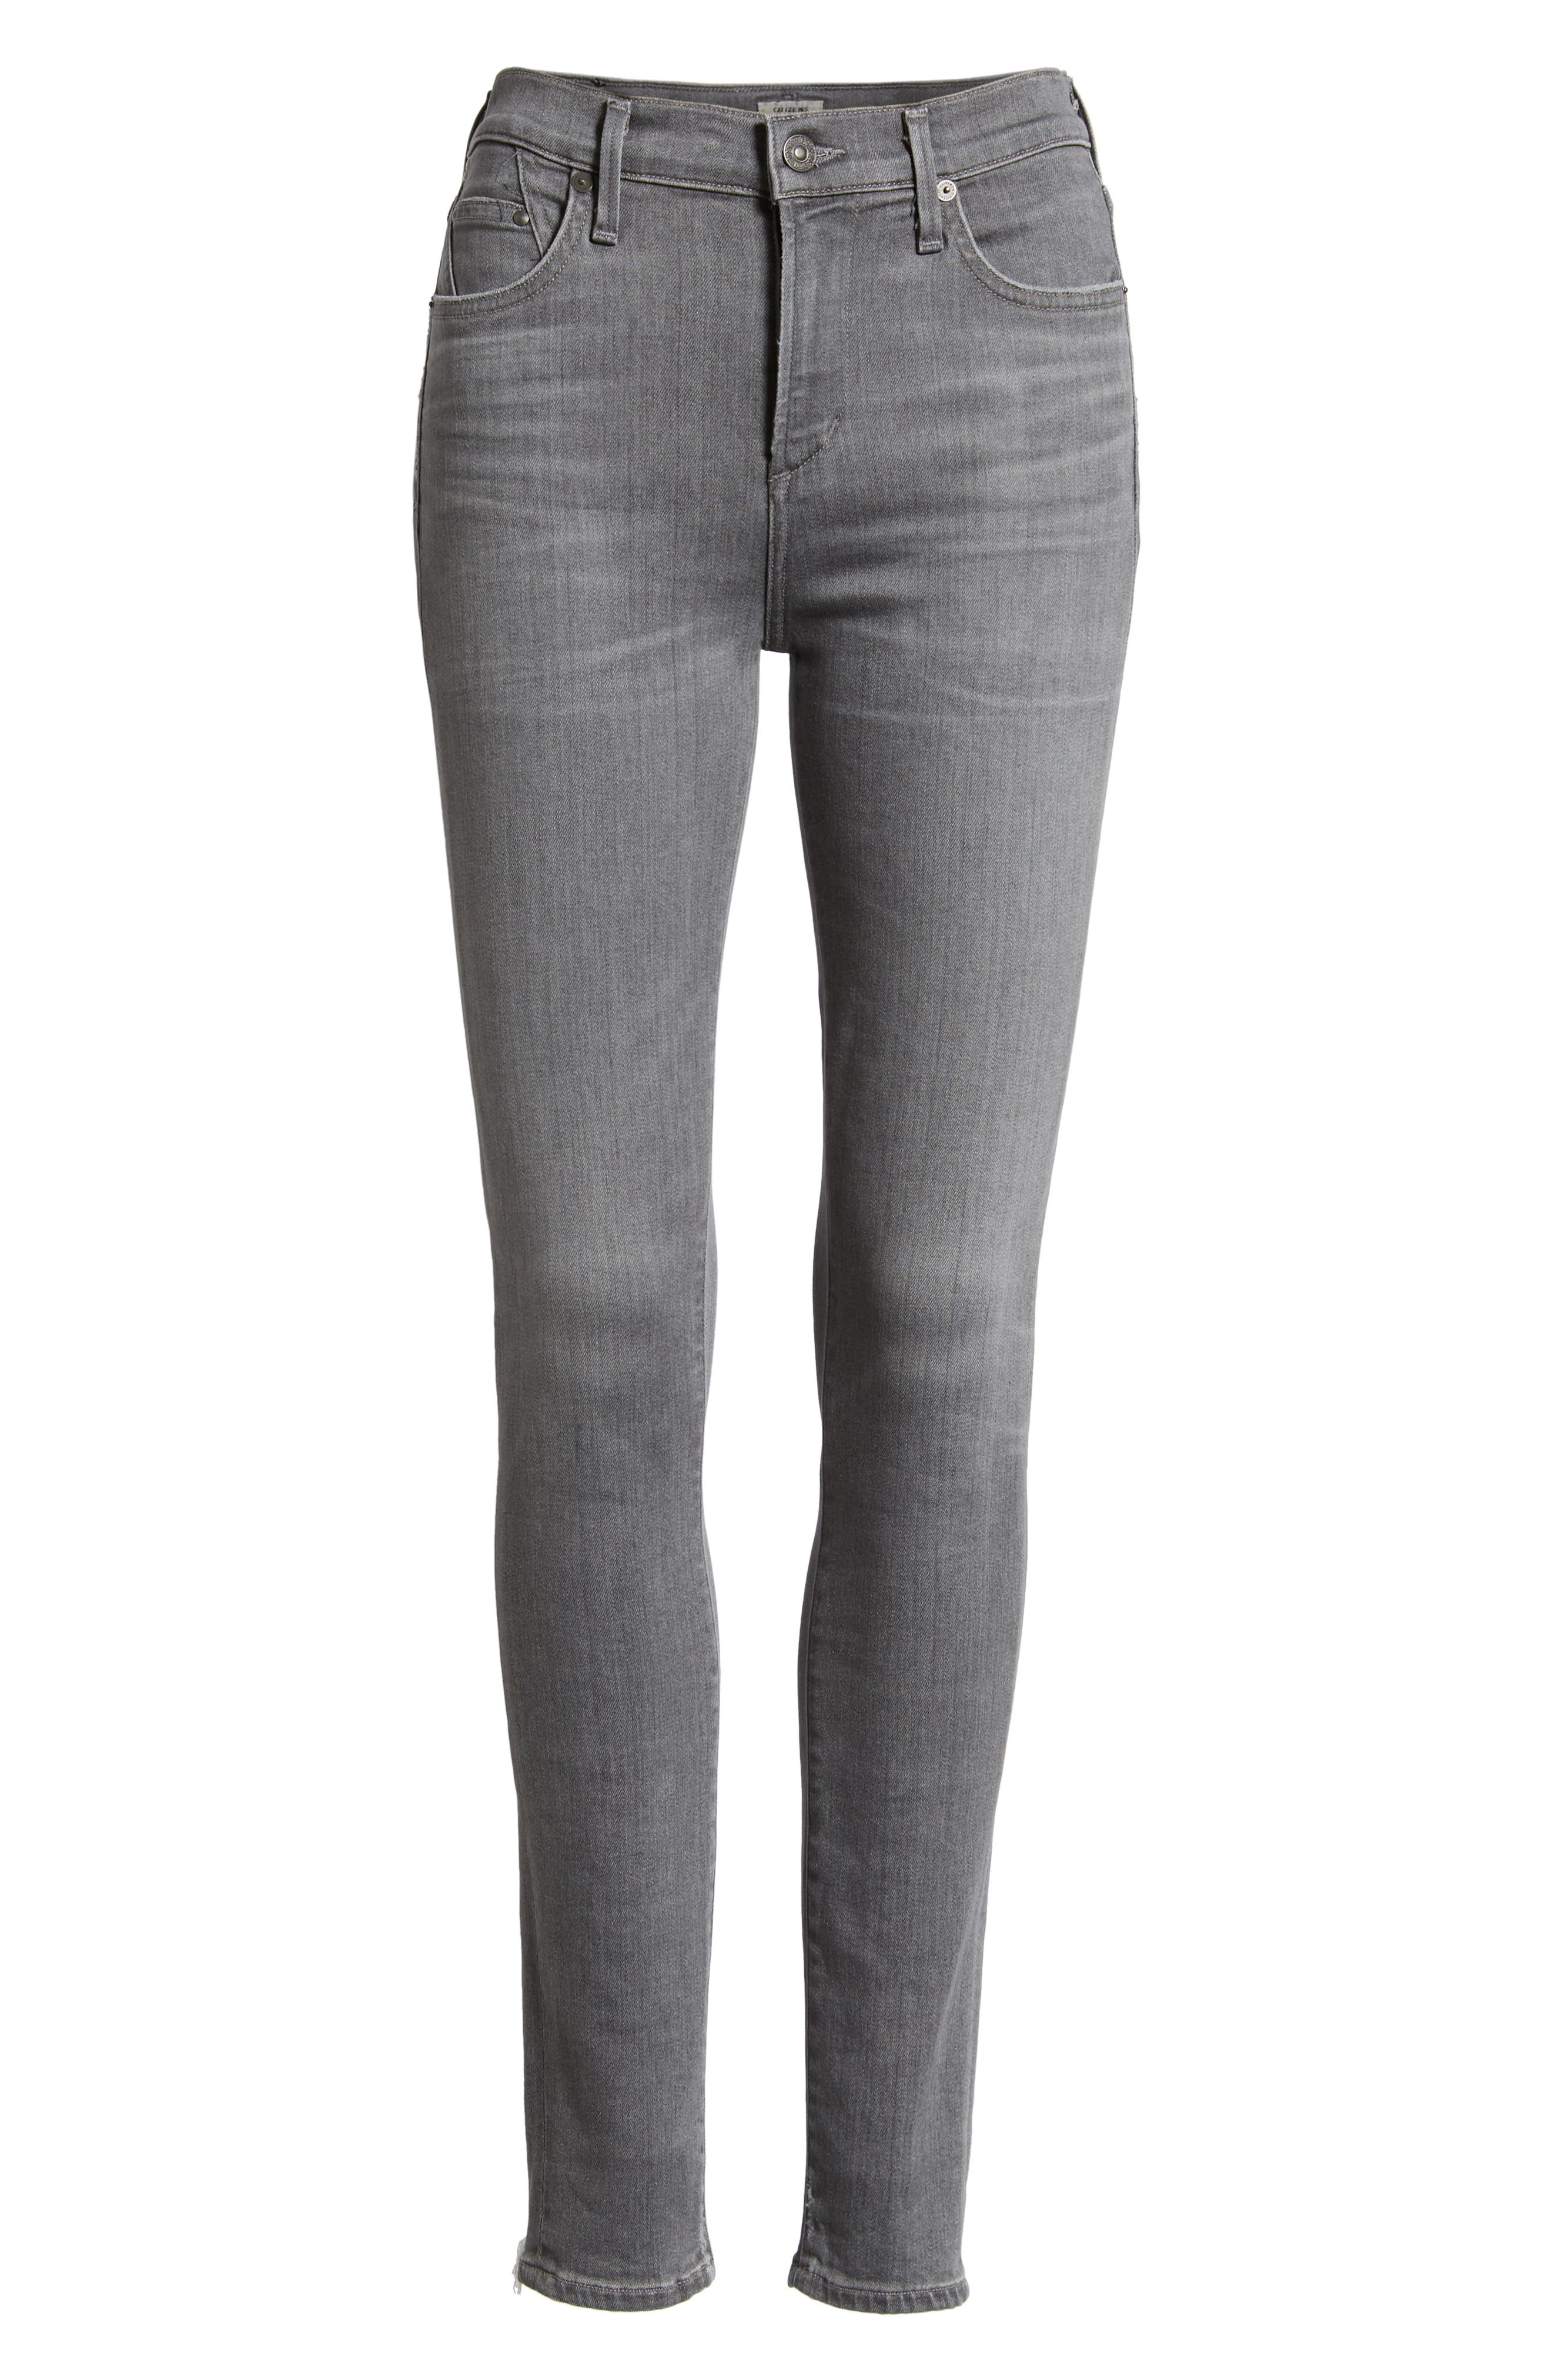 CITIZENS OF HUMANITY,                             Rocket High Waist Skinny Jeans,                             Alternate thumbnail 7, color,                             STATUETTE